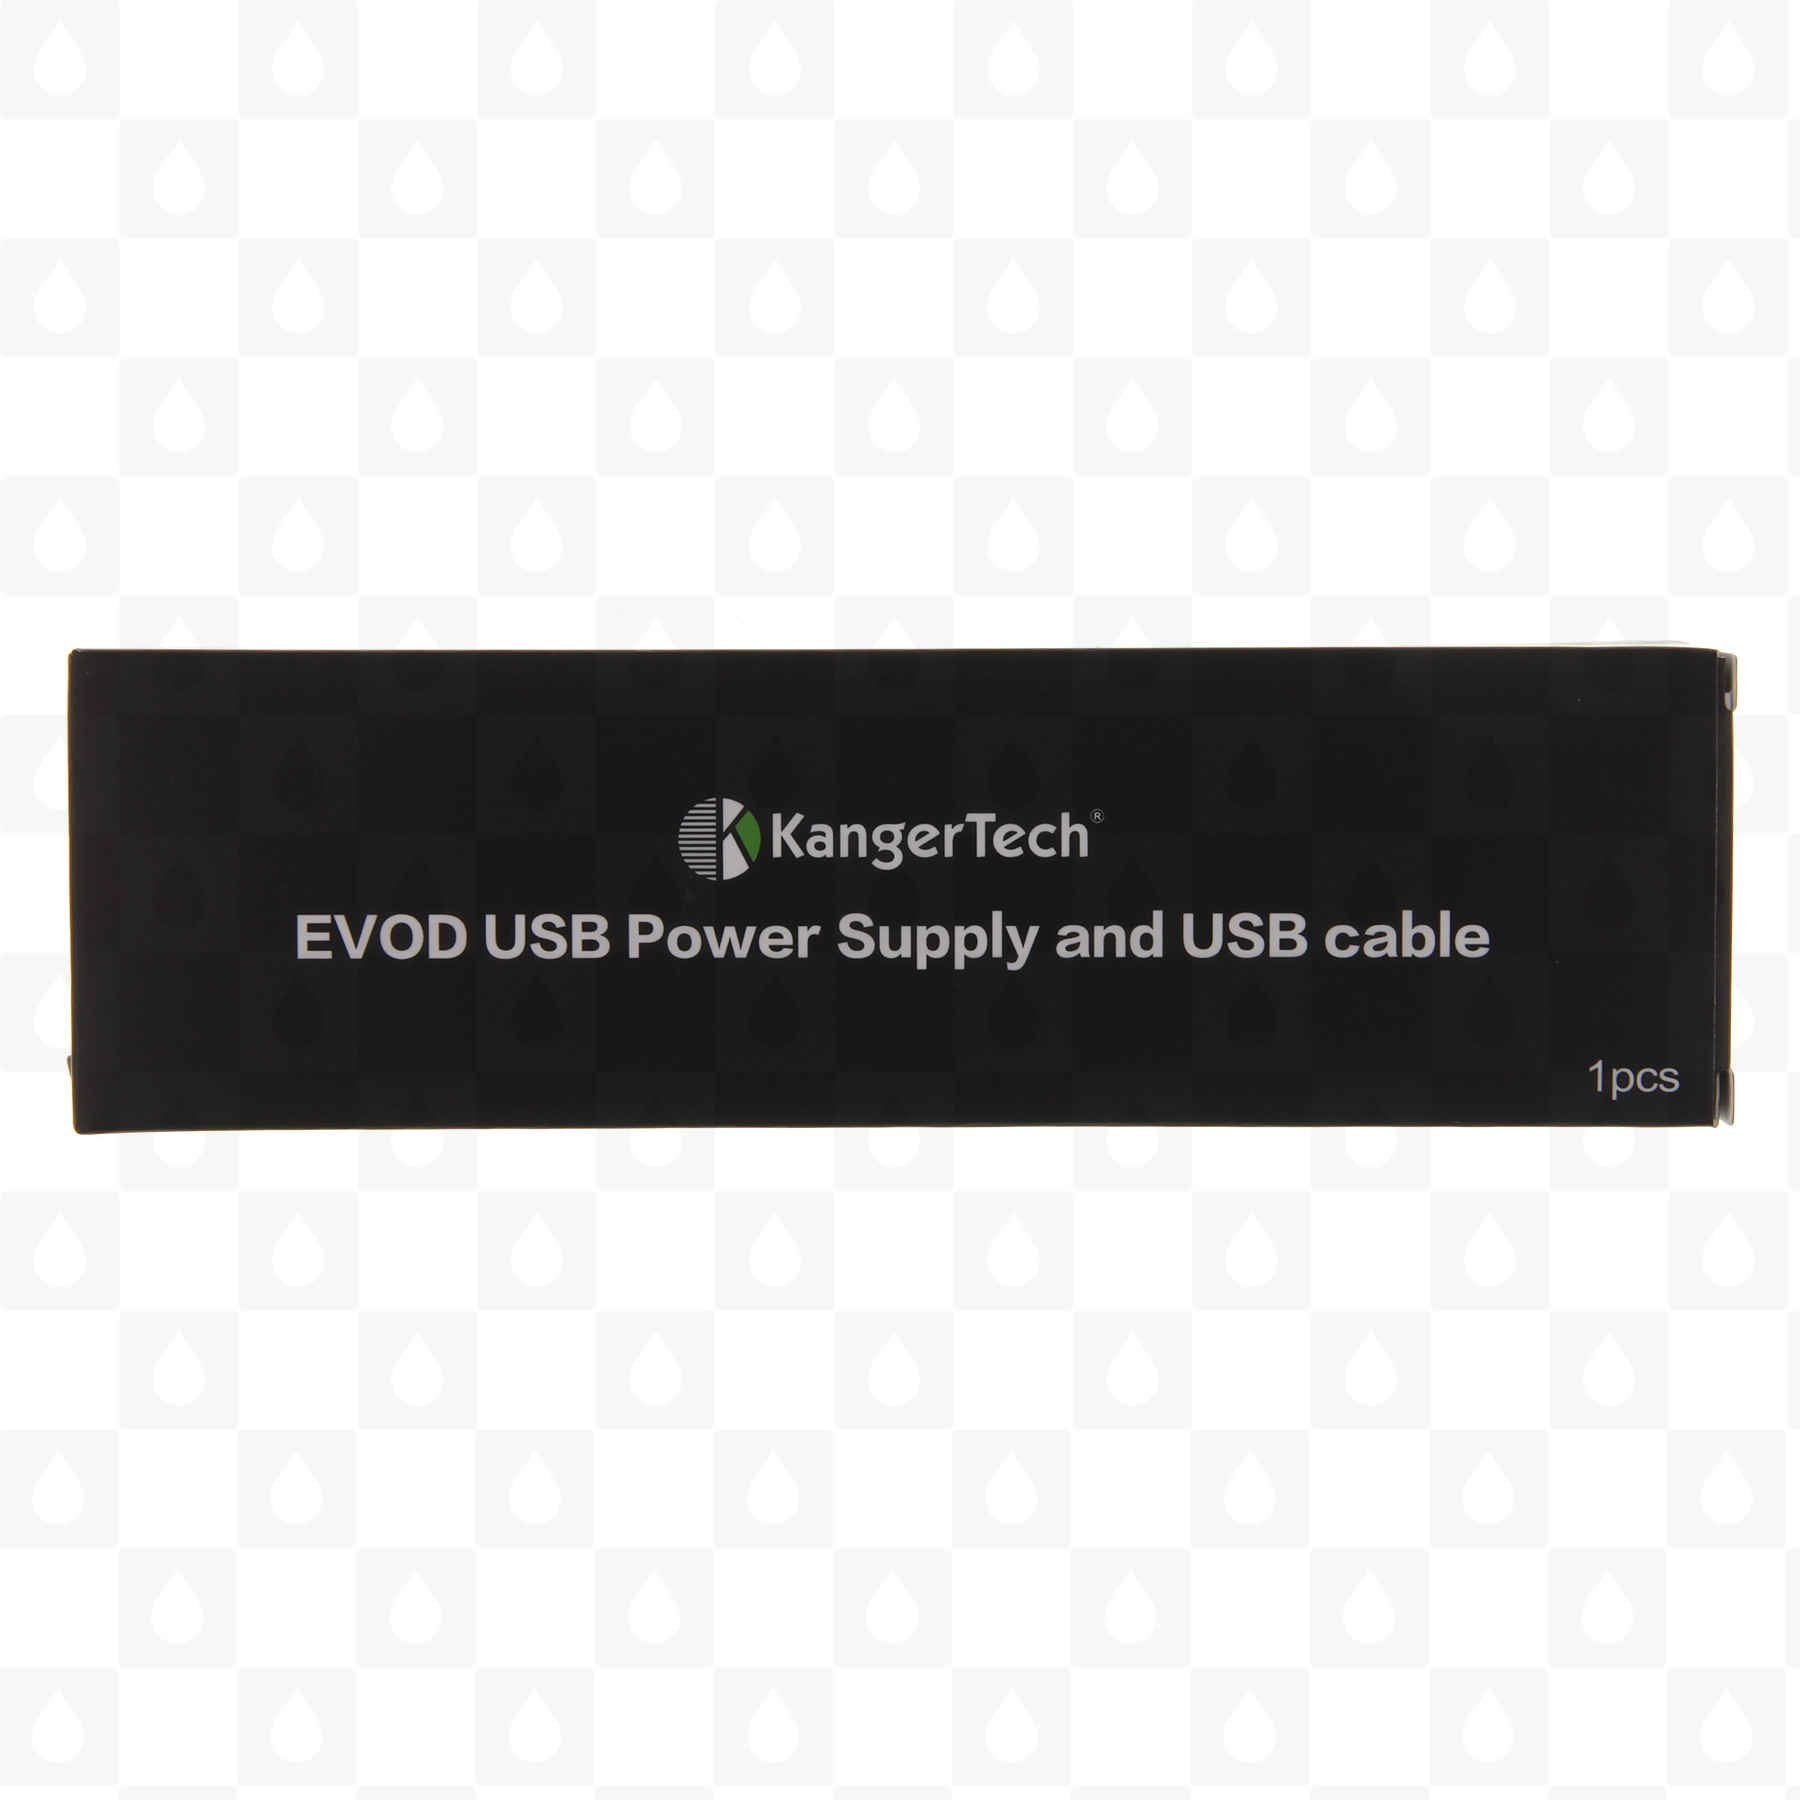 Kanger Evod Usb Passthrough E Cigarette Battery Includes Lead Wiring Including The Power Inside Coilsbox My Term Fixed Voltage